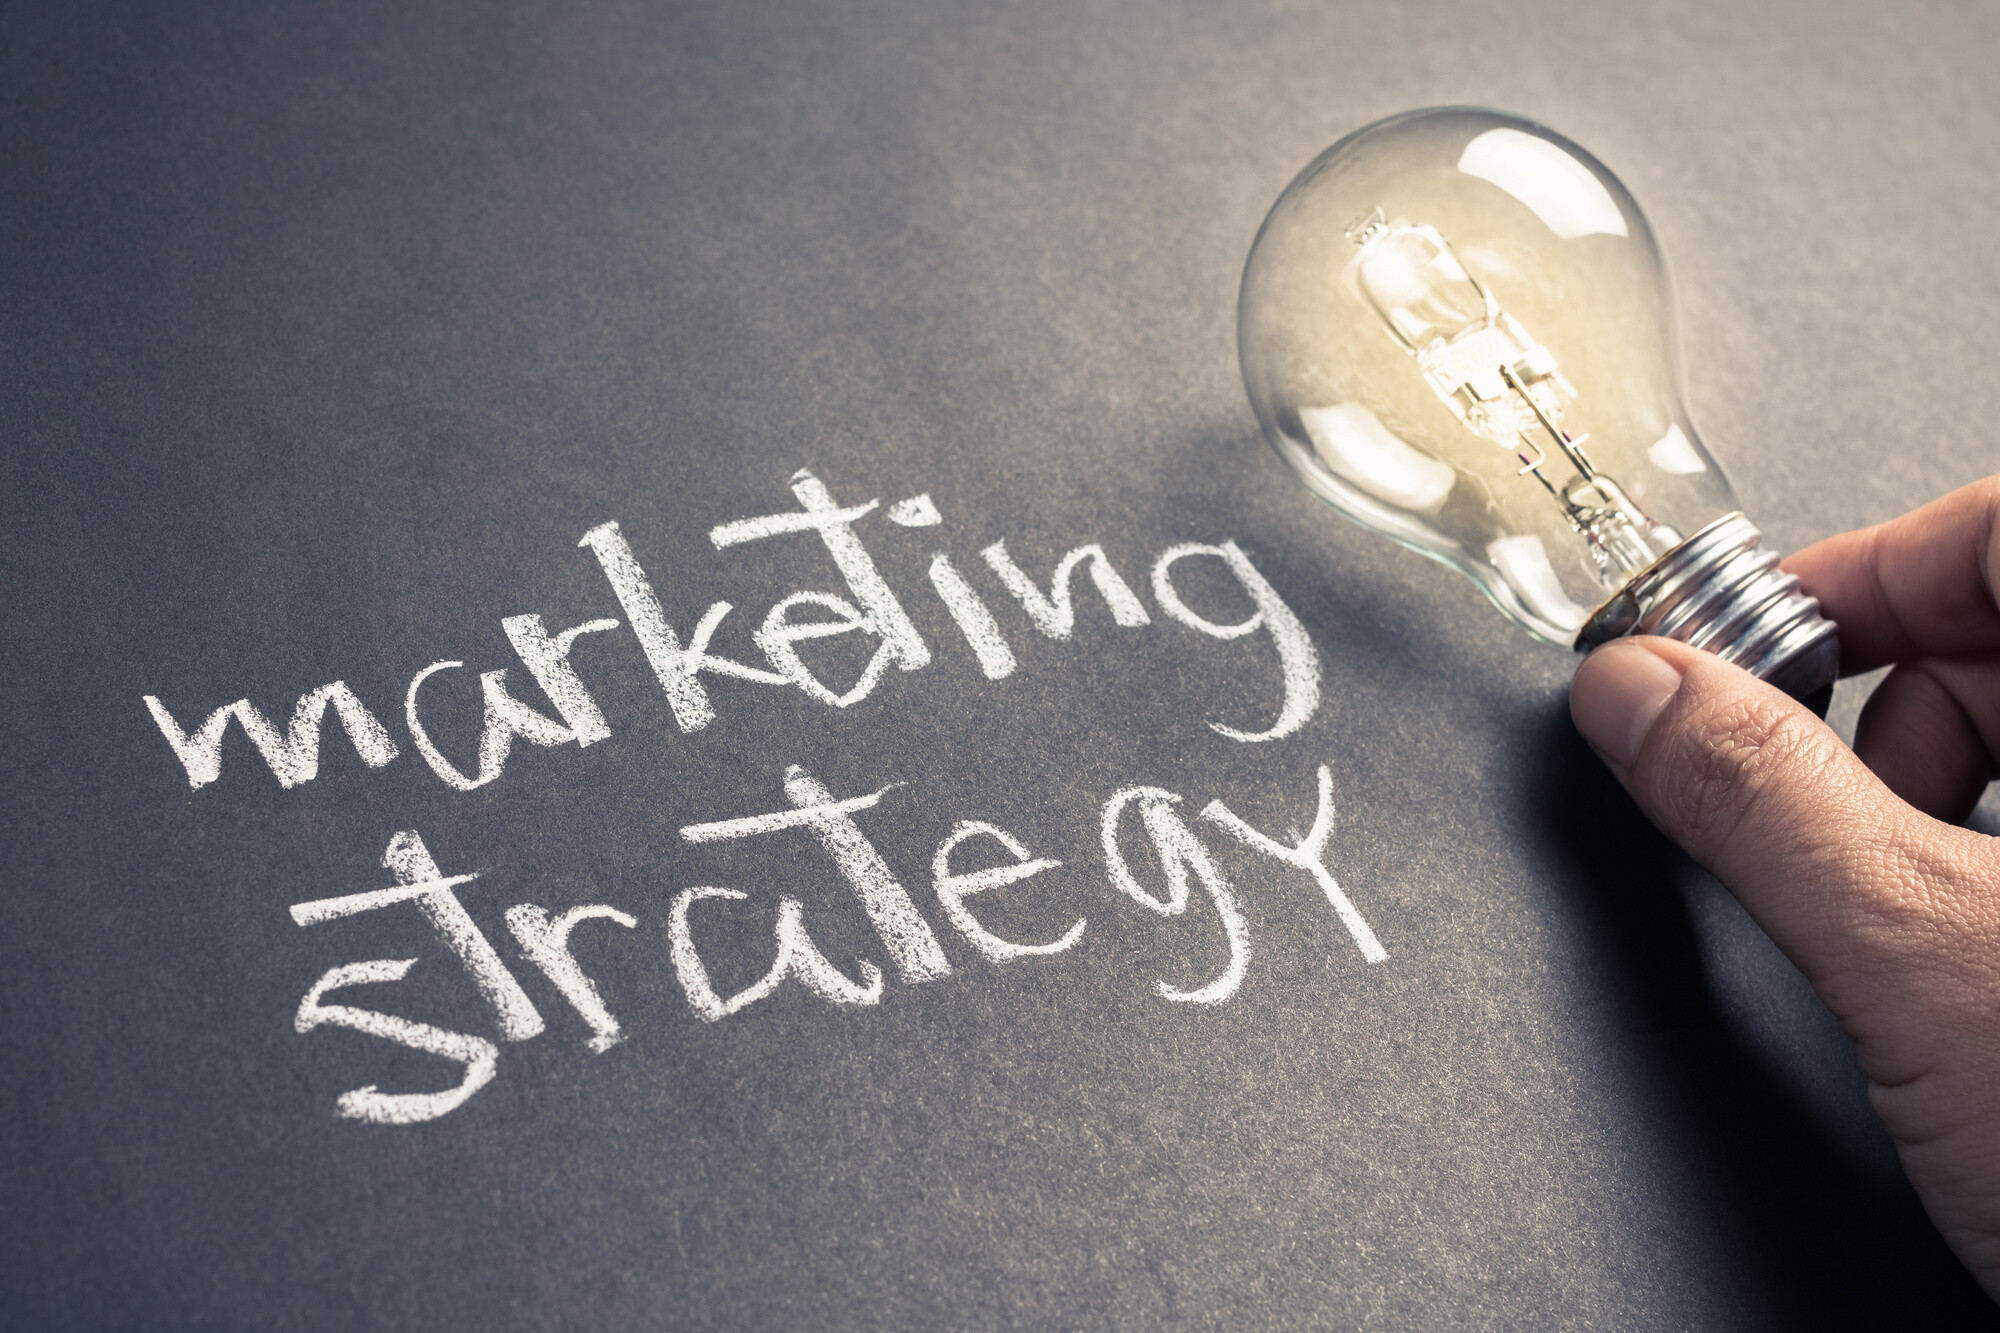 4 Tips on Building a Digital Marketing Strategy for Small Businesses - Yoav Tchelet